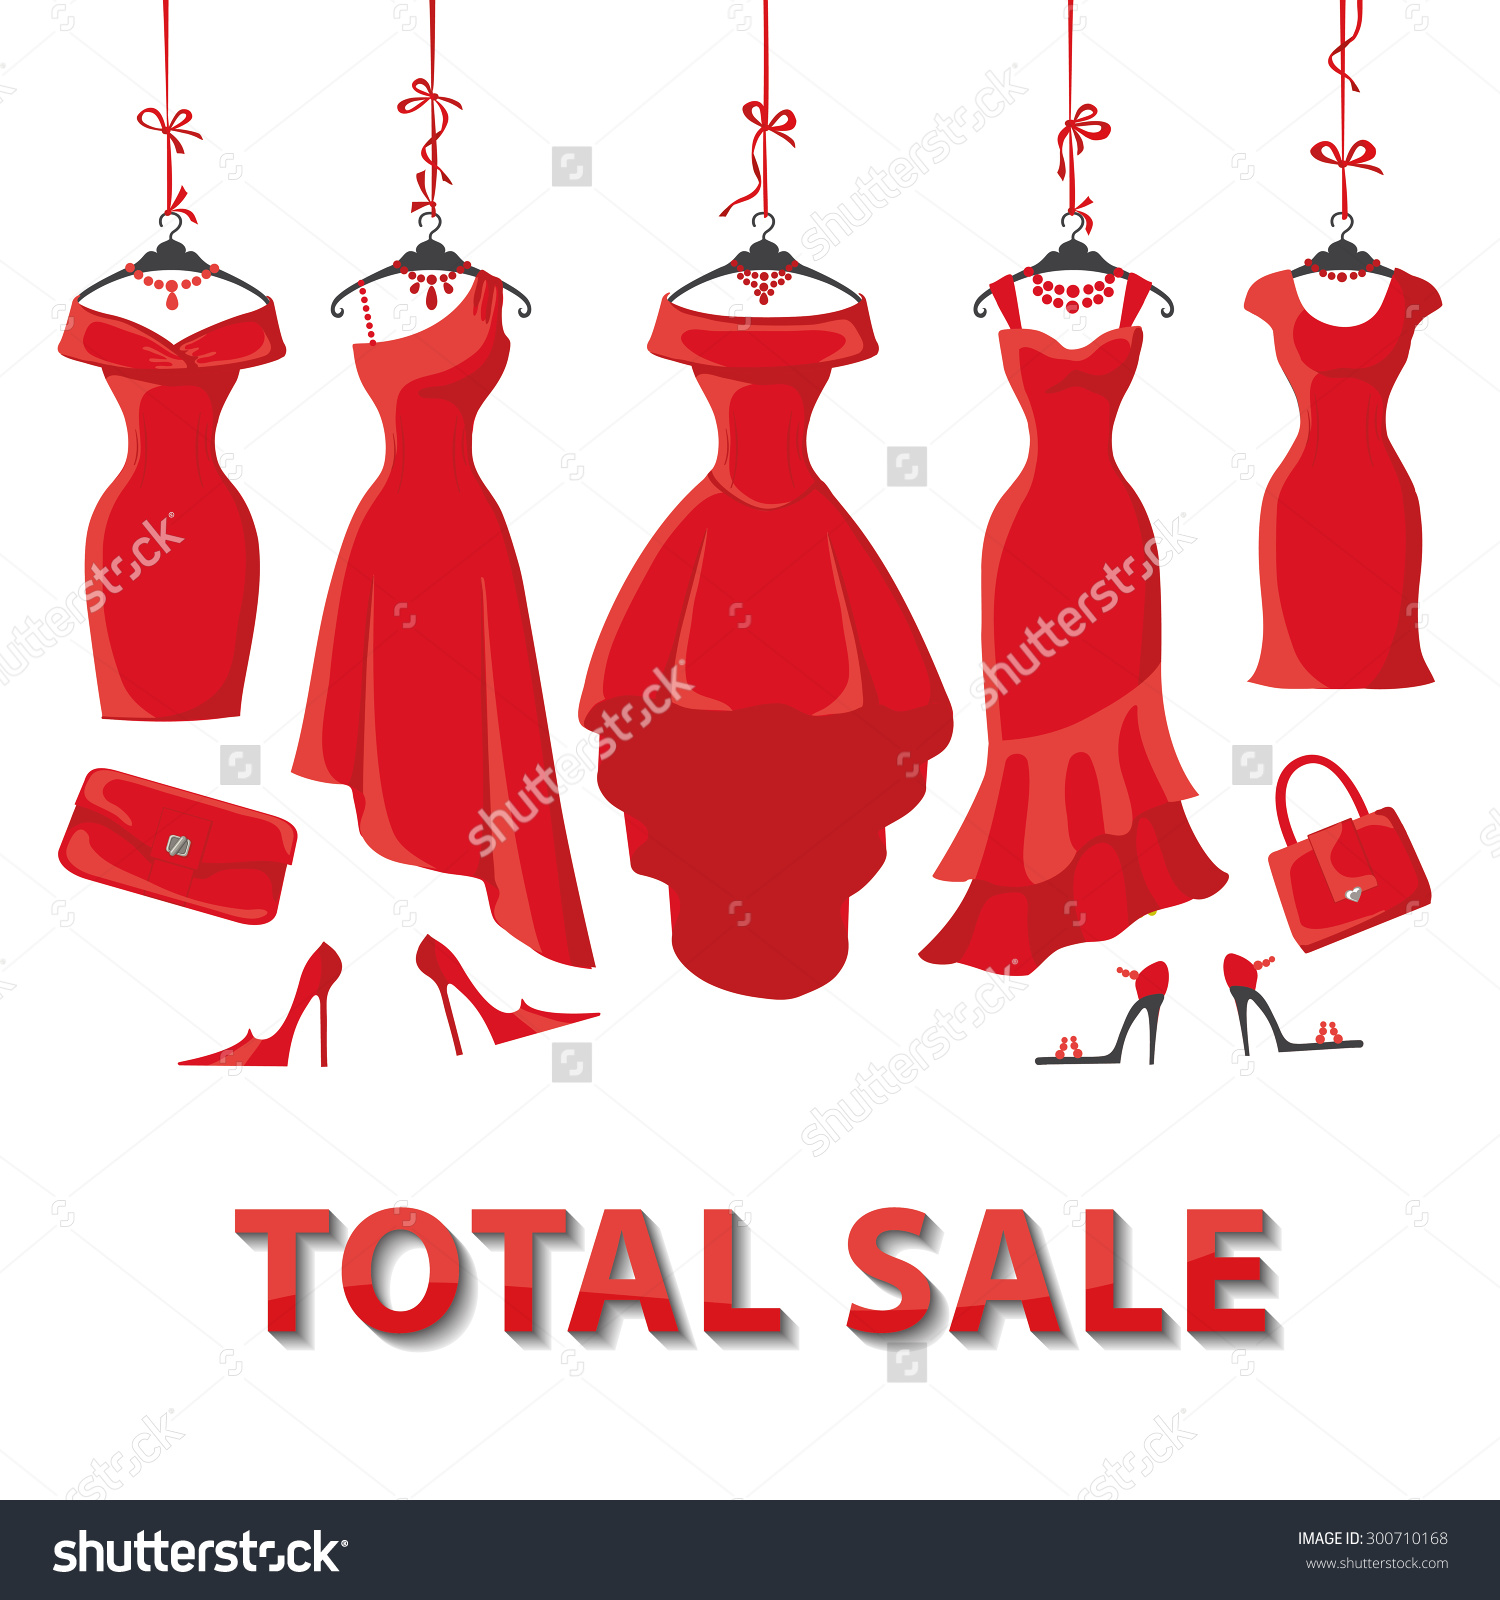 Red Woman Dresses On Hanger Fashion Stock Vector 300710168.